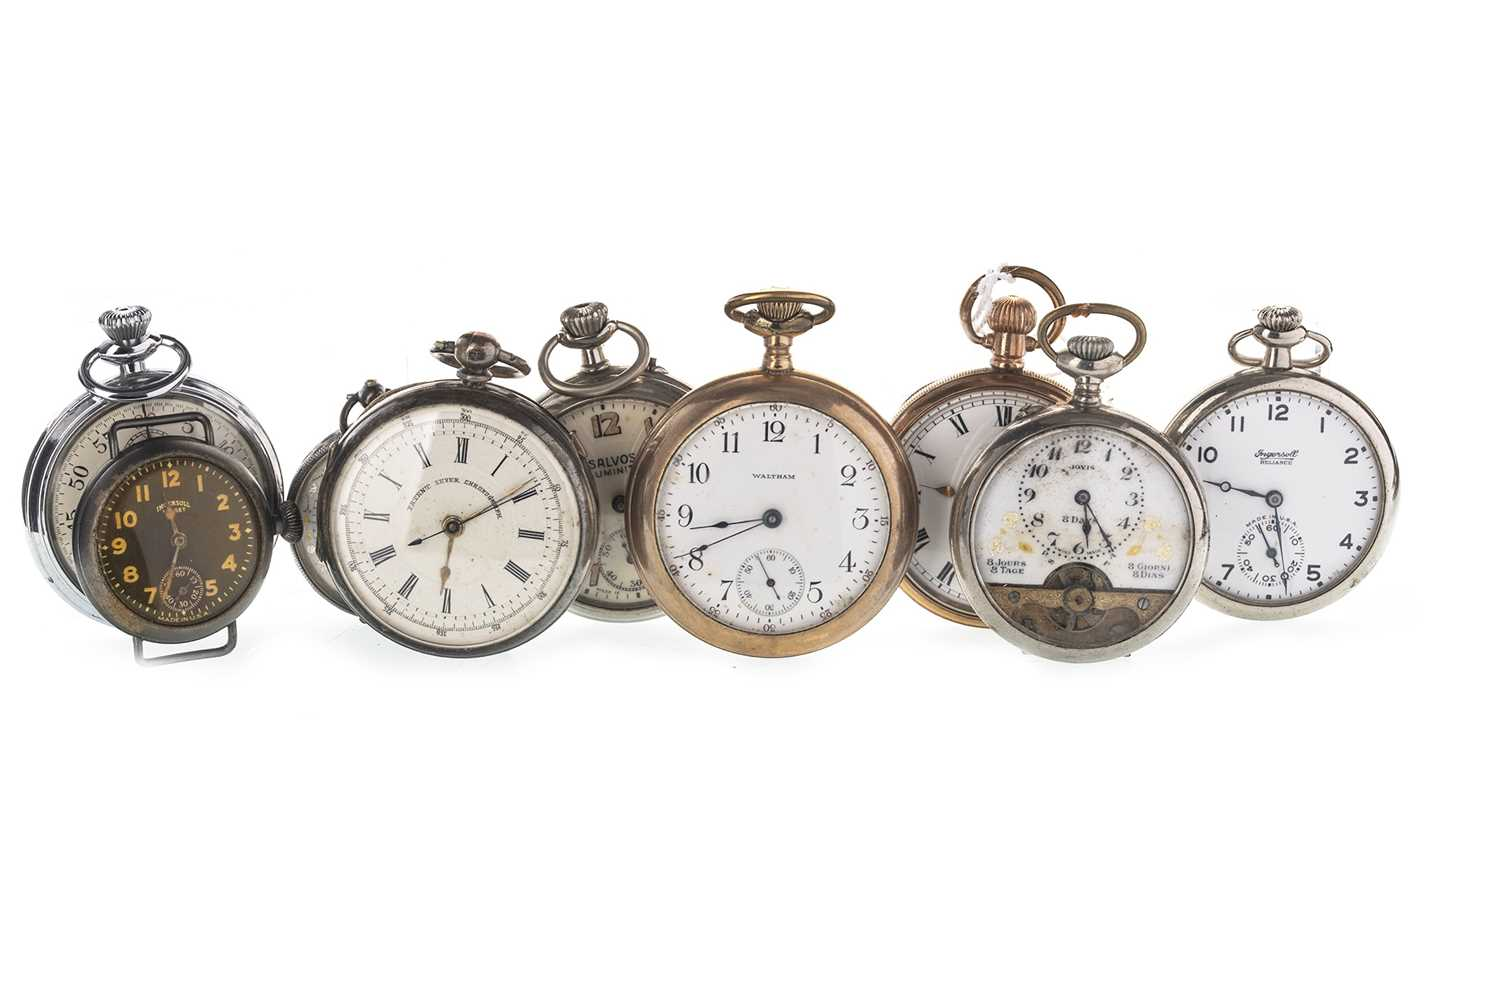 Lot 715-A COLLECTION OF POCKET WATCHES